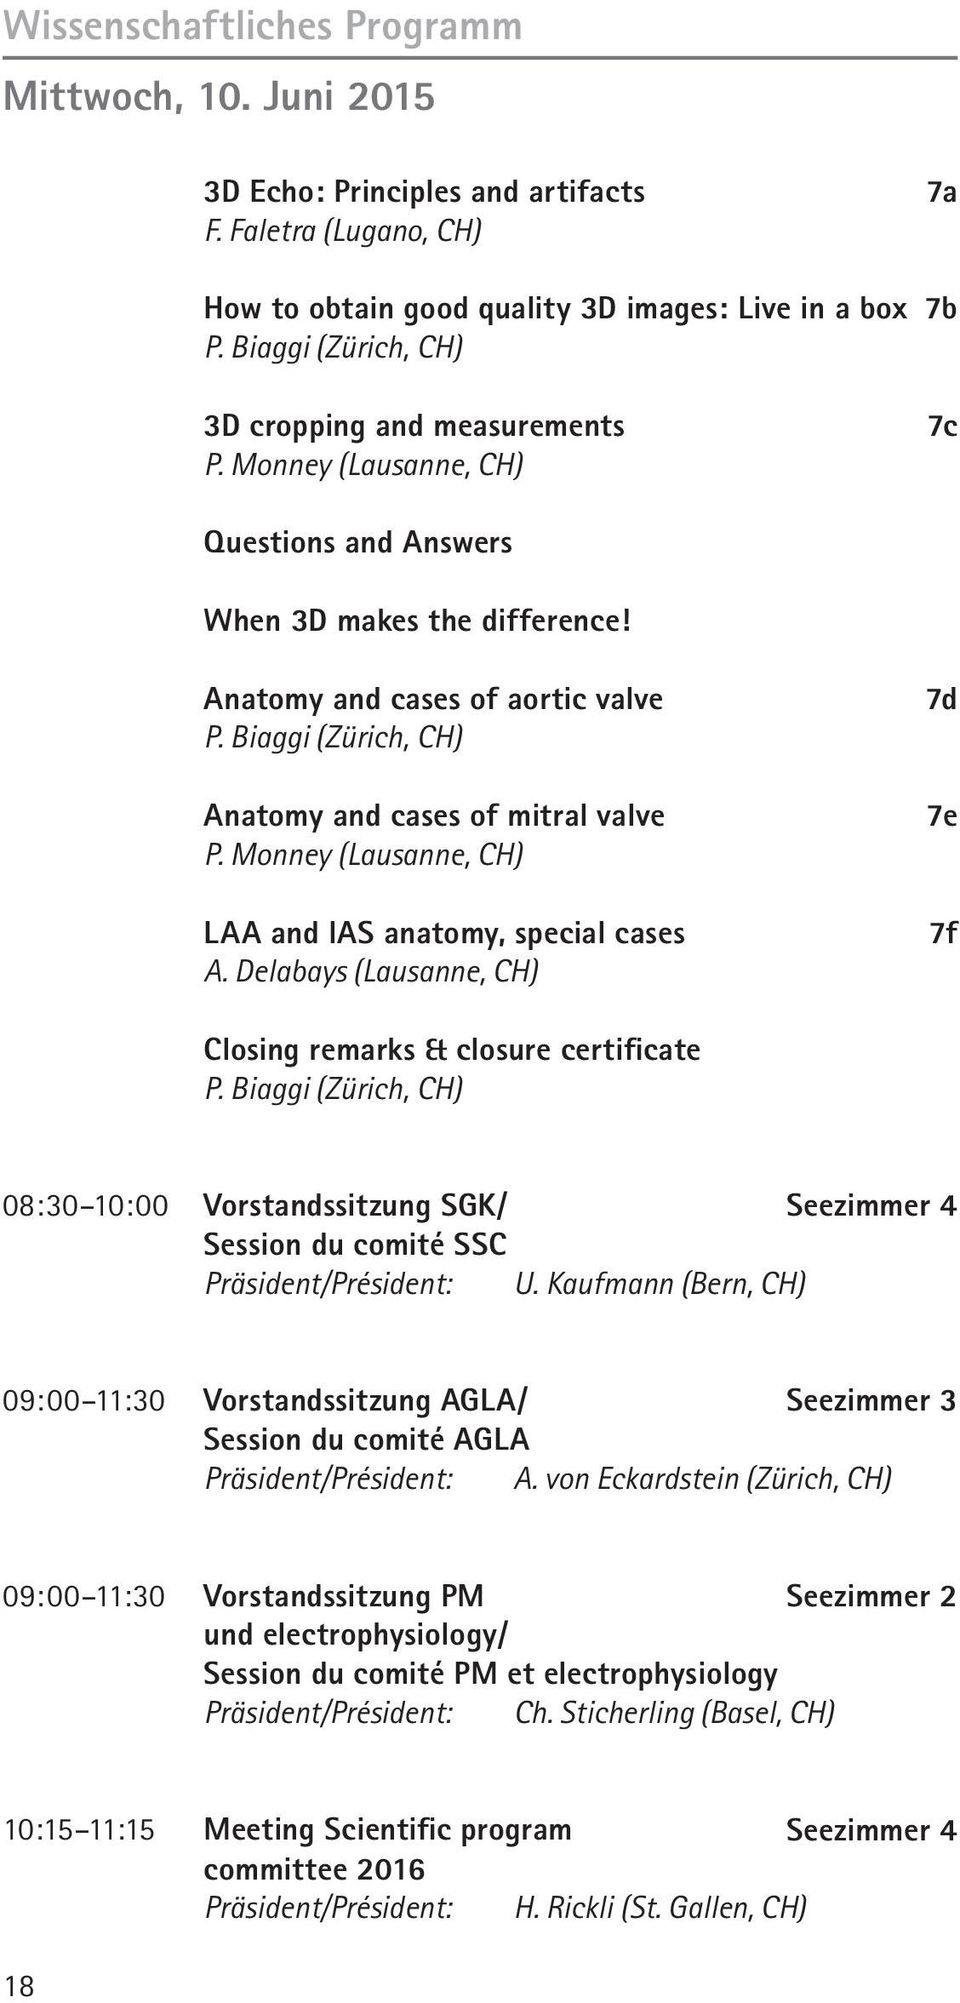 Biaggi (Zürich, CH) Anatomy and cases of mitral valve P. Monney (Lausanne, CH) LAA and IAS anatomy, special cases A. Delabays (Lausanne, CH) 7d 7e 7f Closing remarks & closure certificate P.